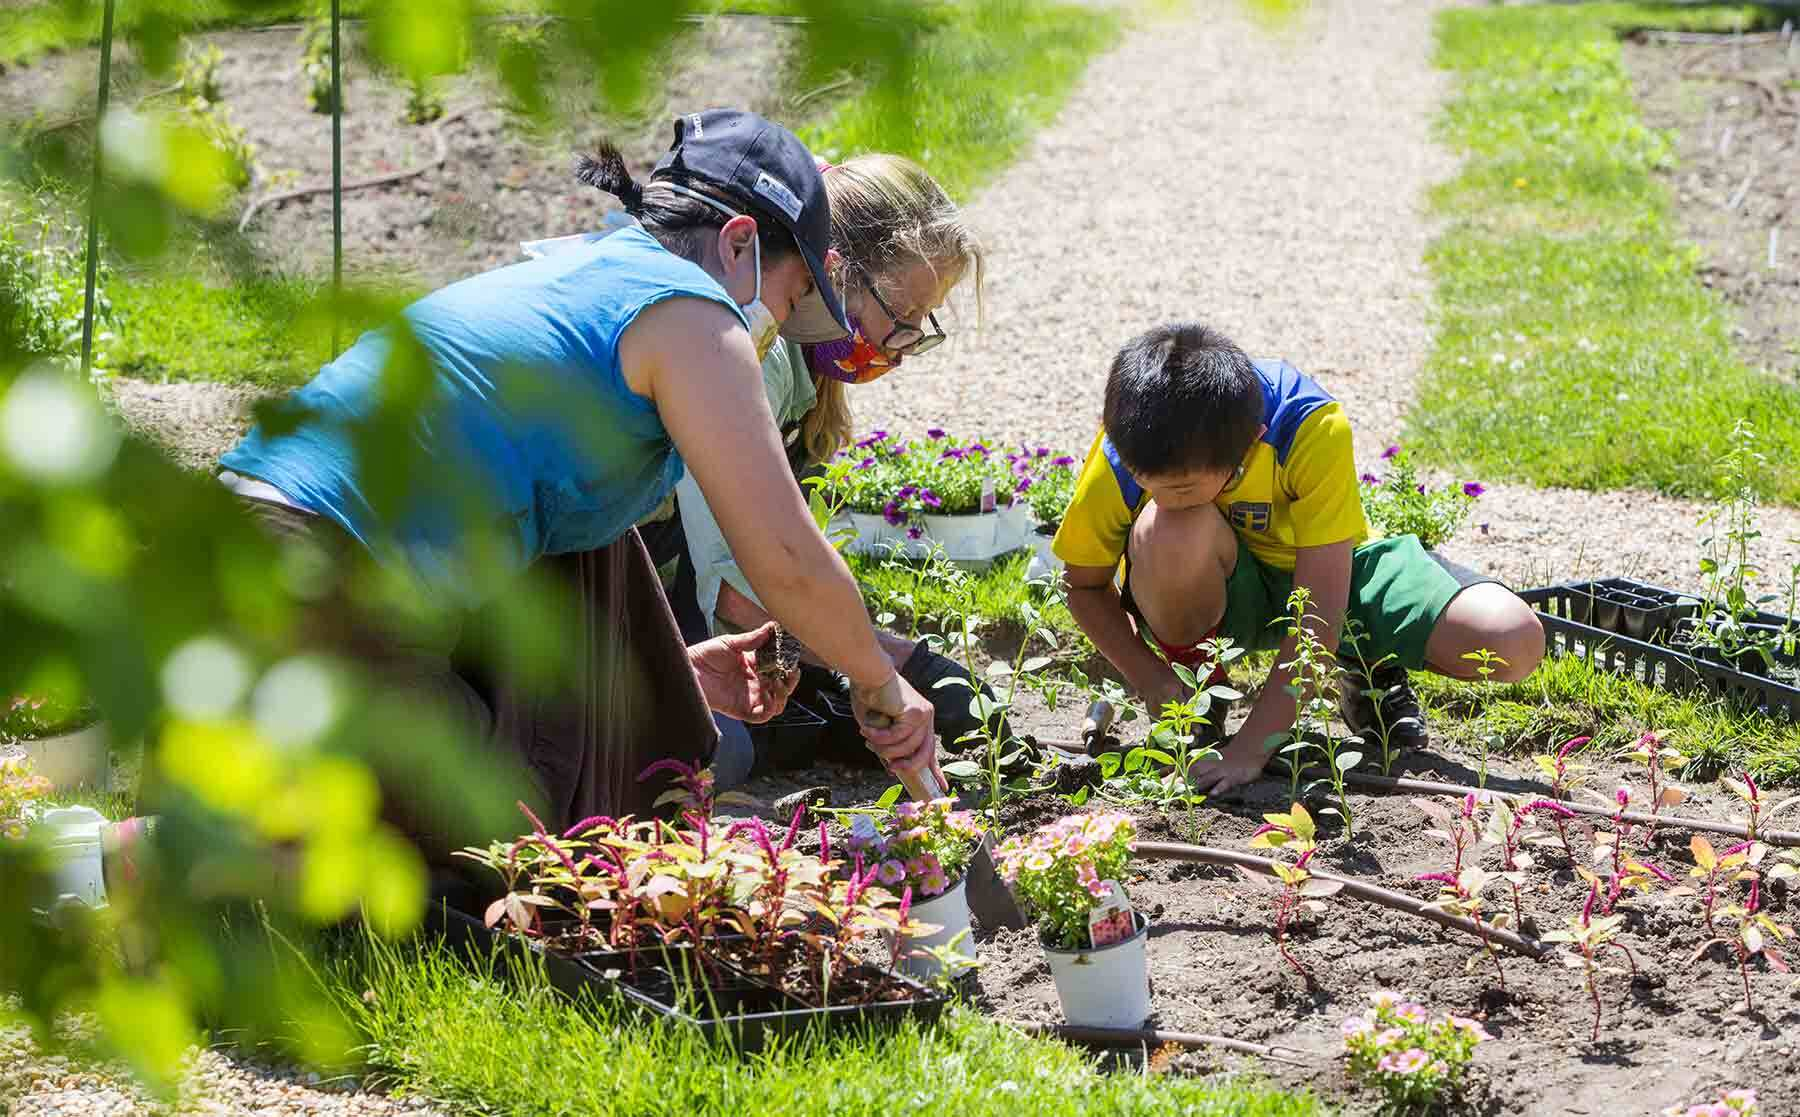 A young boy and two women setting plants into a garden.